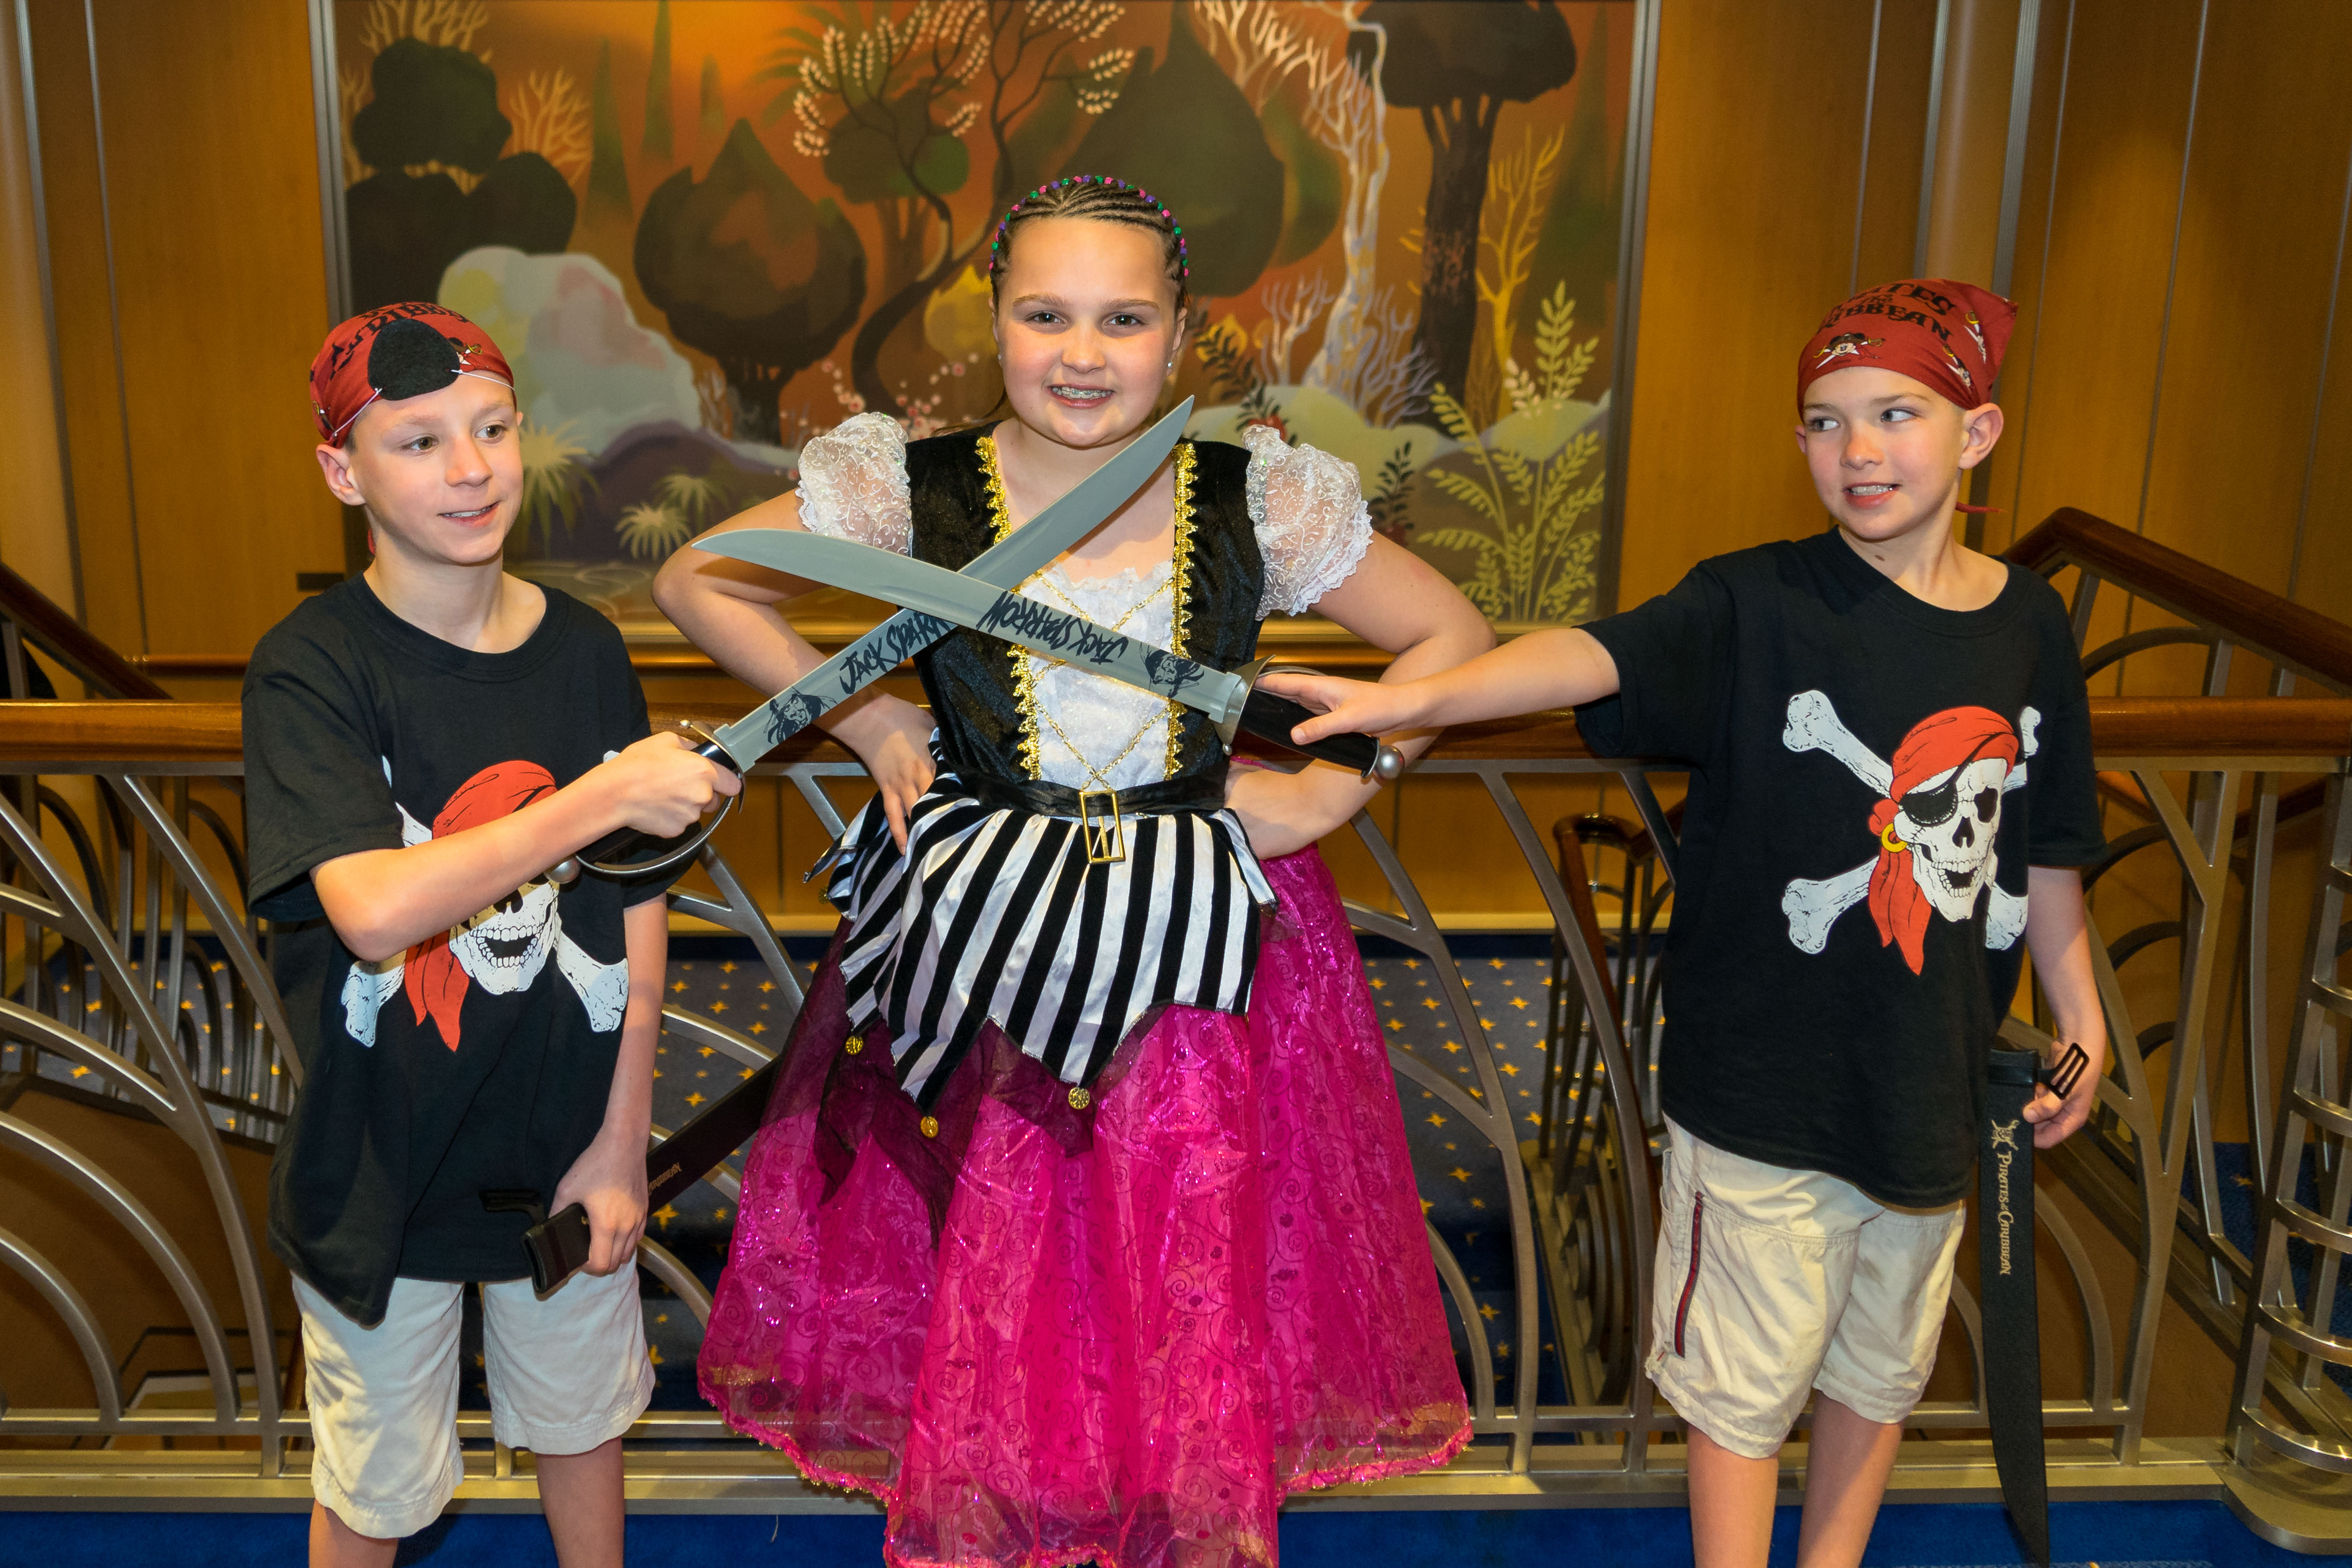 Pirate Night is worth the effort of thinking ahead. The kids will have a memorable time clashing swords with Jack Sparrow and watching fireworks. (Kevin Kaiser | Travel Beat Magazine)